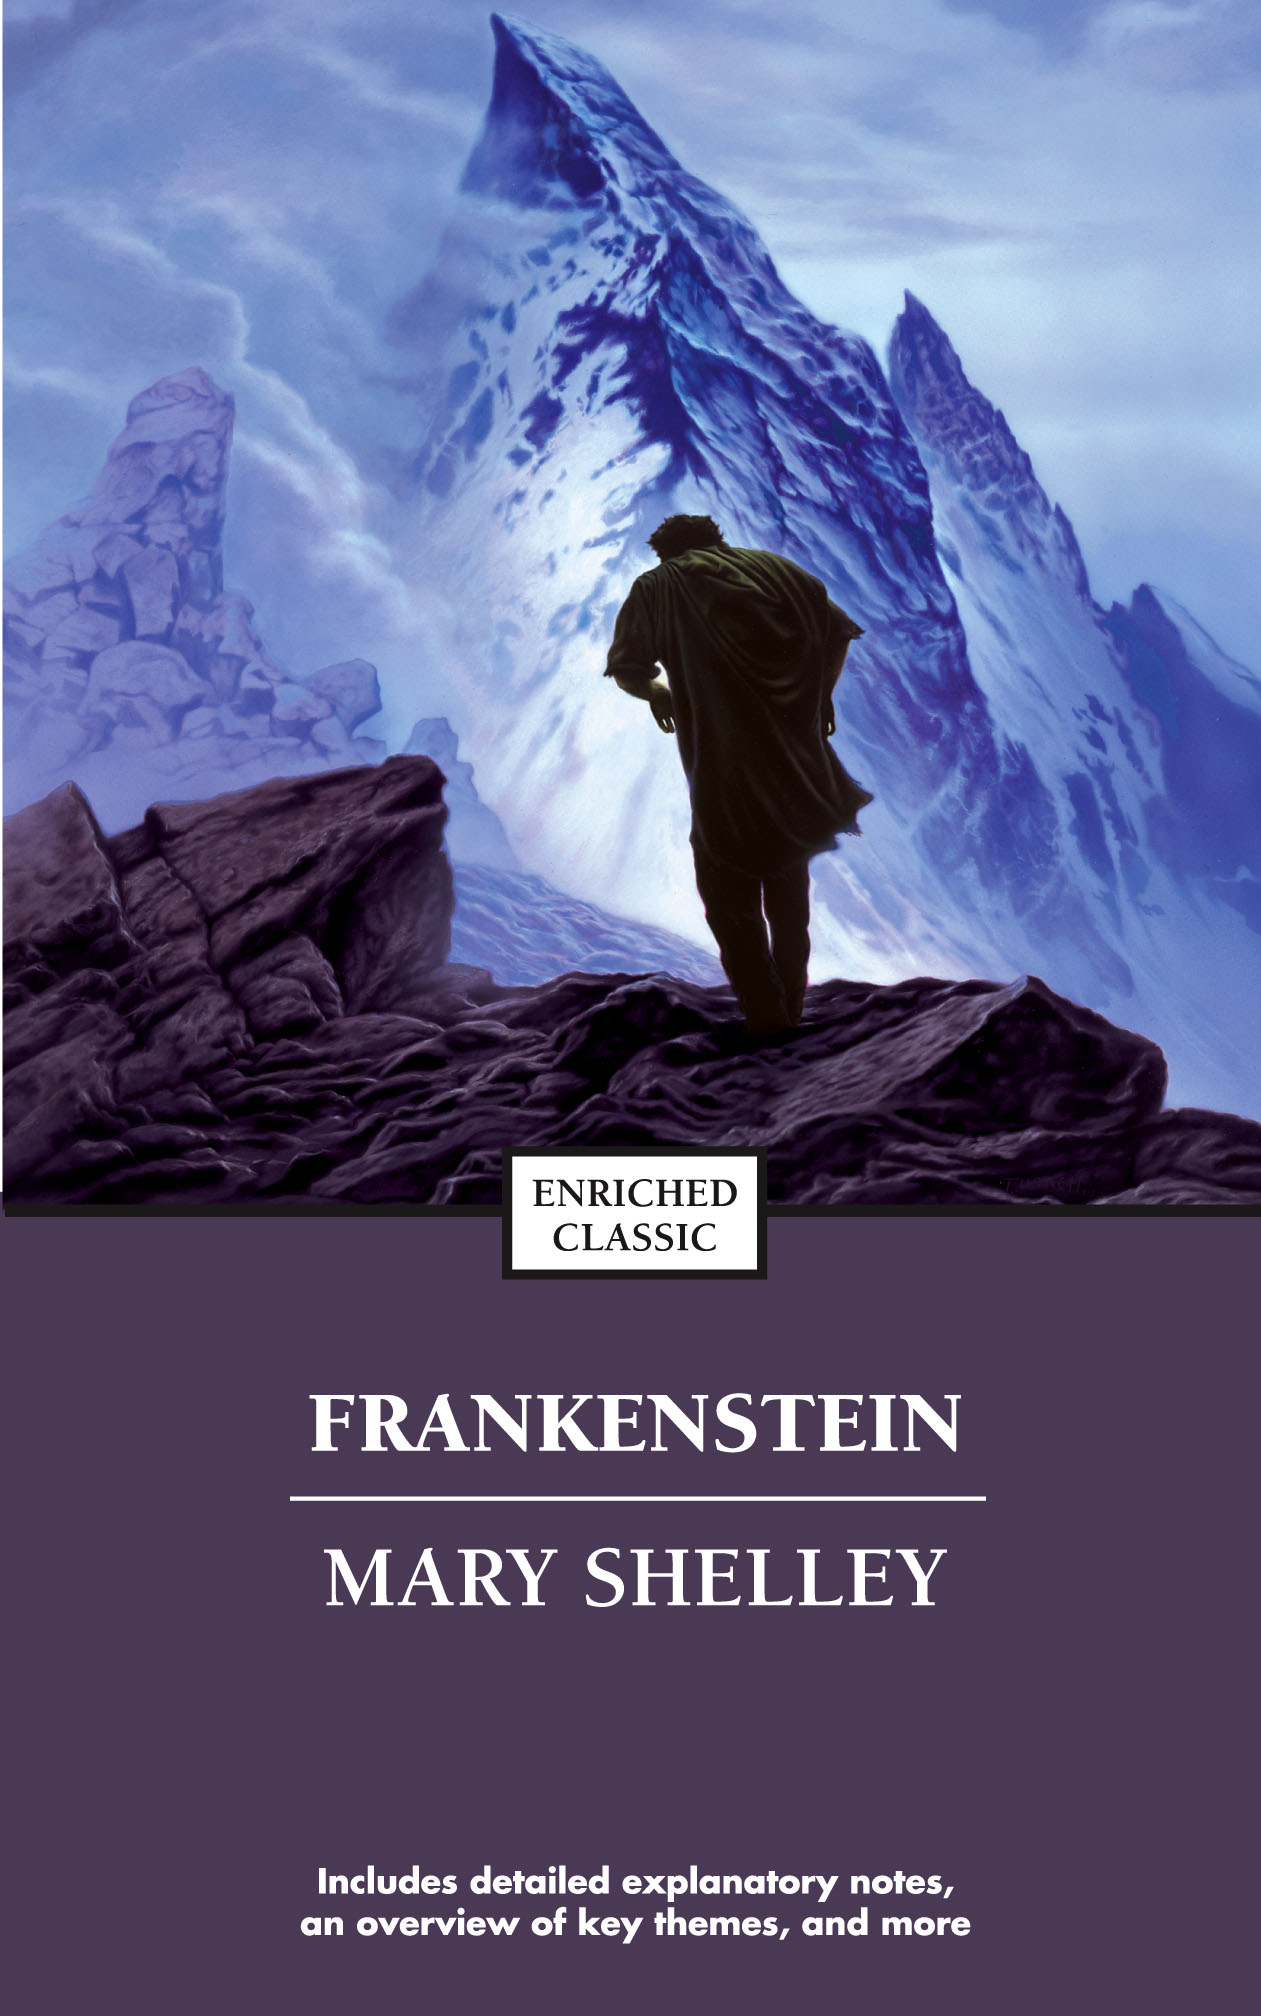 8. Frankenstein by Mary Shelley (1818)